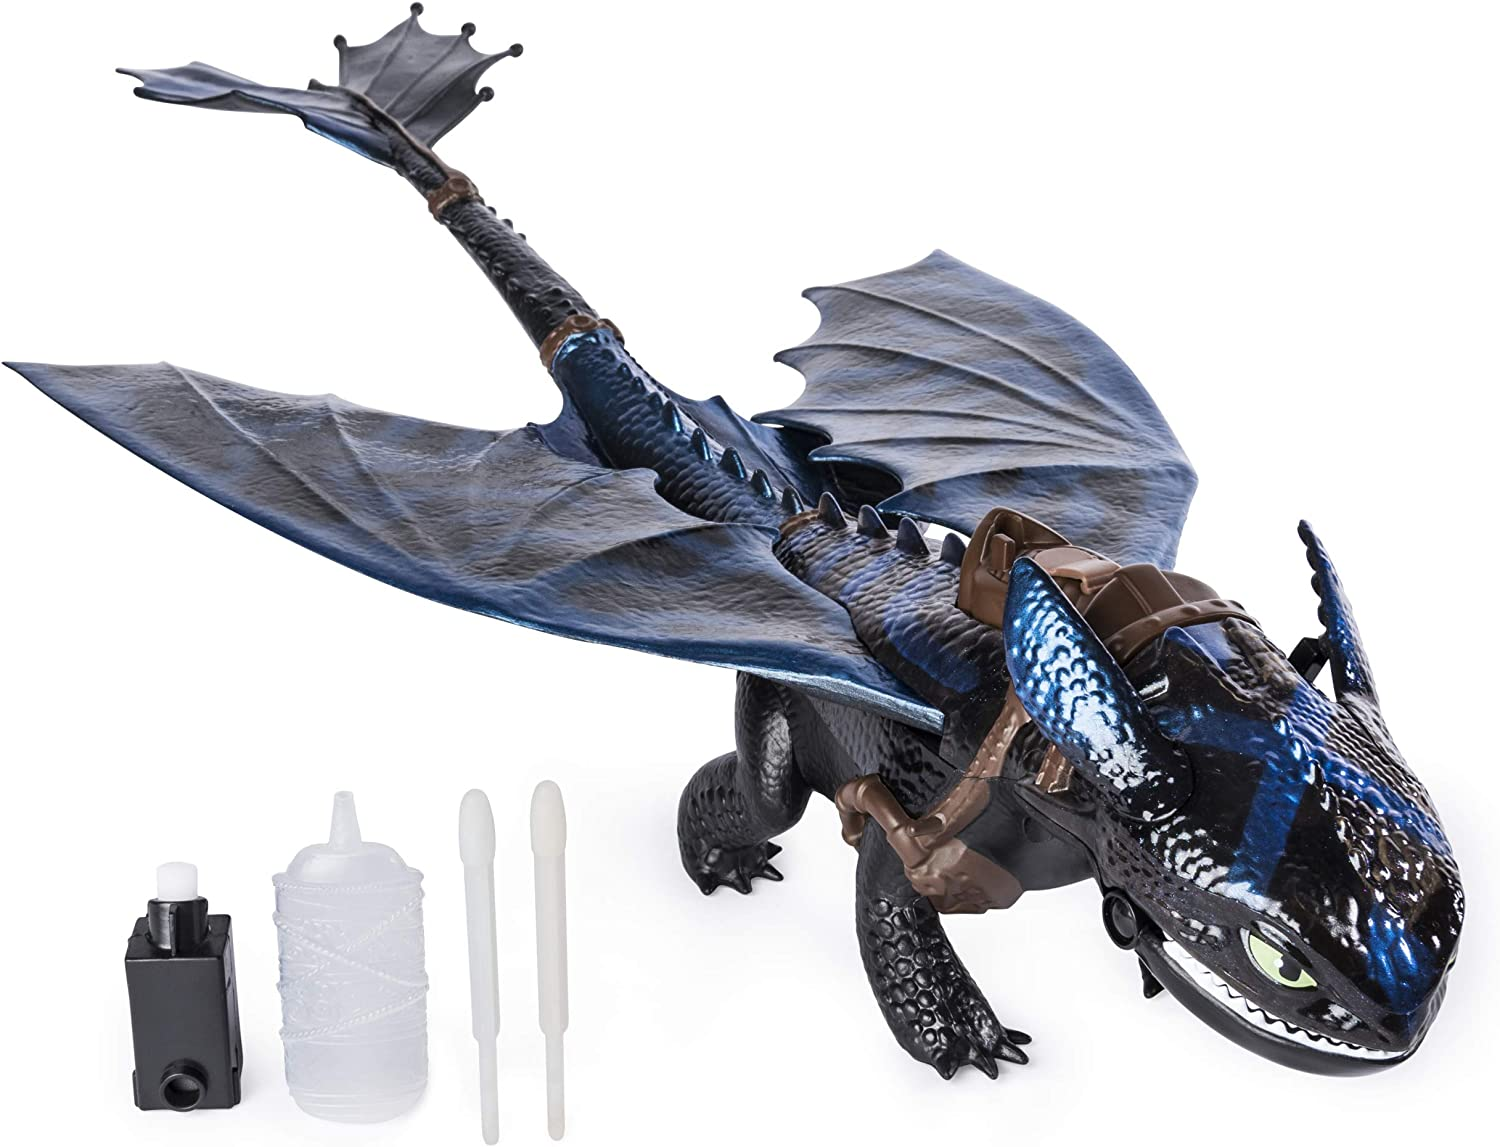 Movie Line - Actionfig Fire Breathing Toothless Ohnezahn 6045436 Dragons